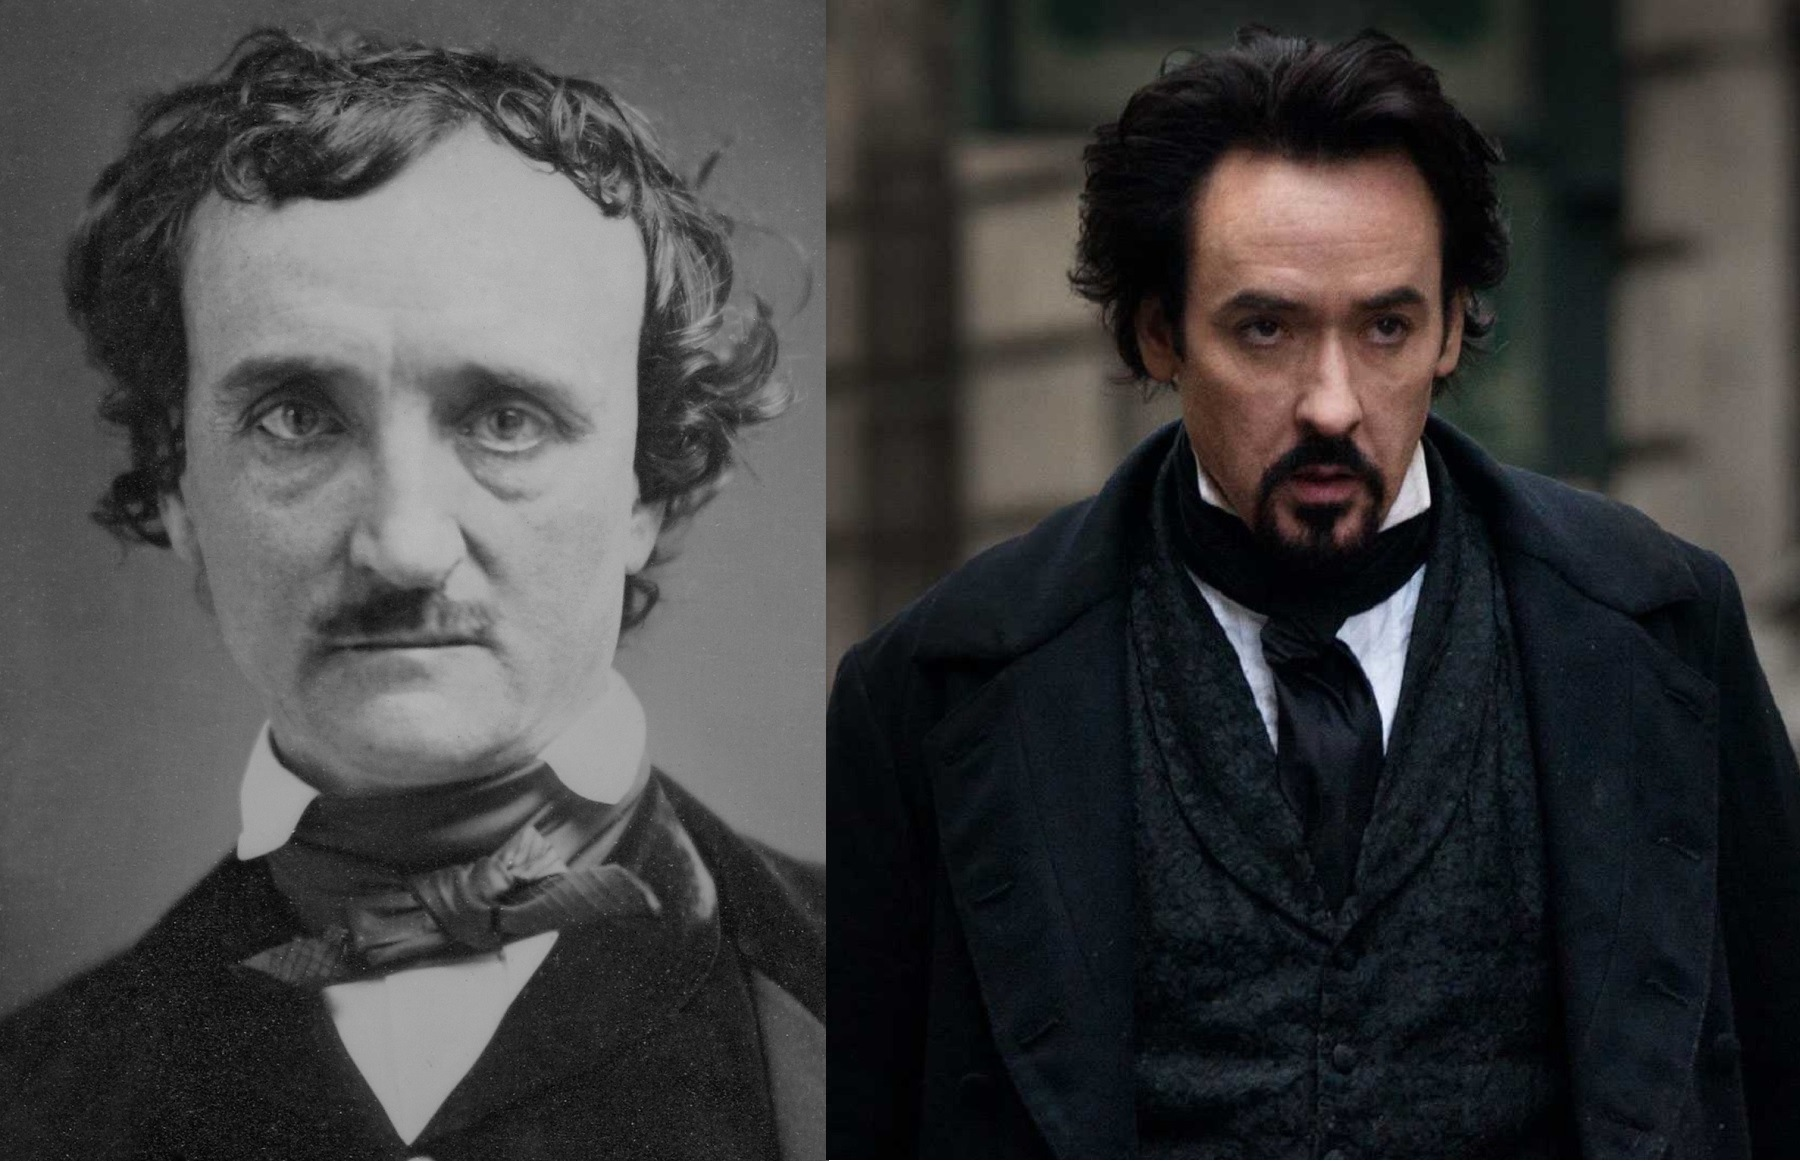 (l to r) The real Edgar Allan Poe vs John Cusack cast as Poe in The Raven (2012)